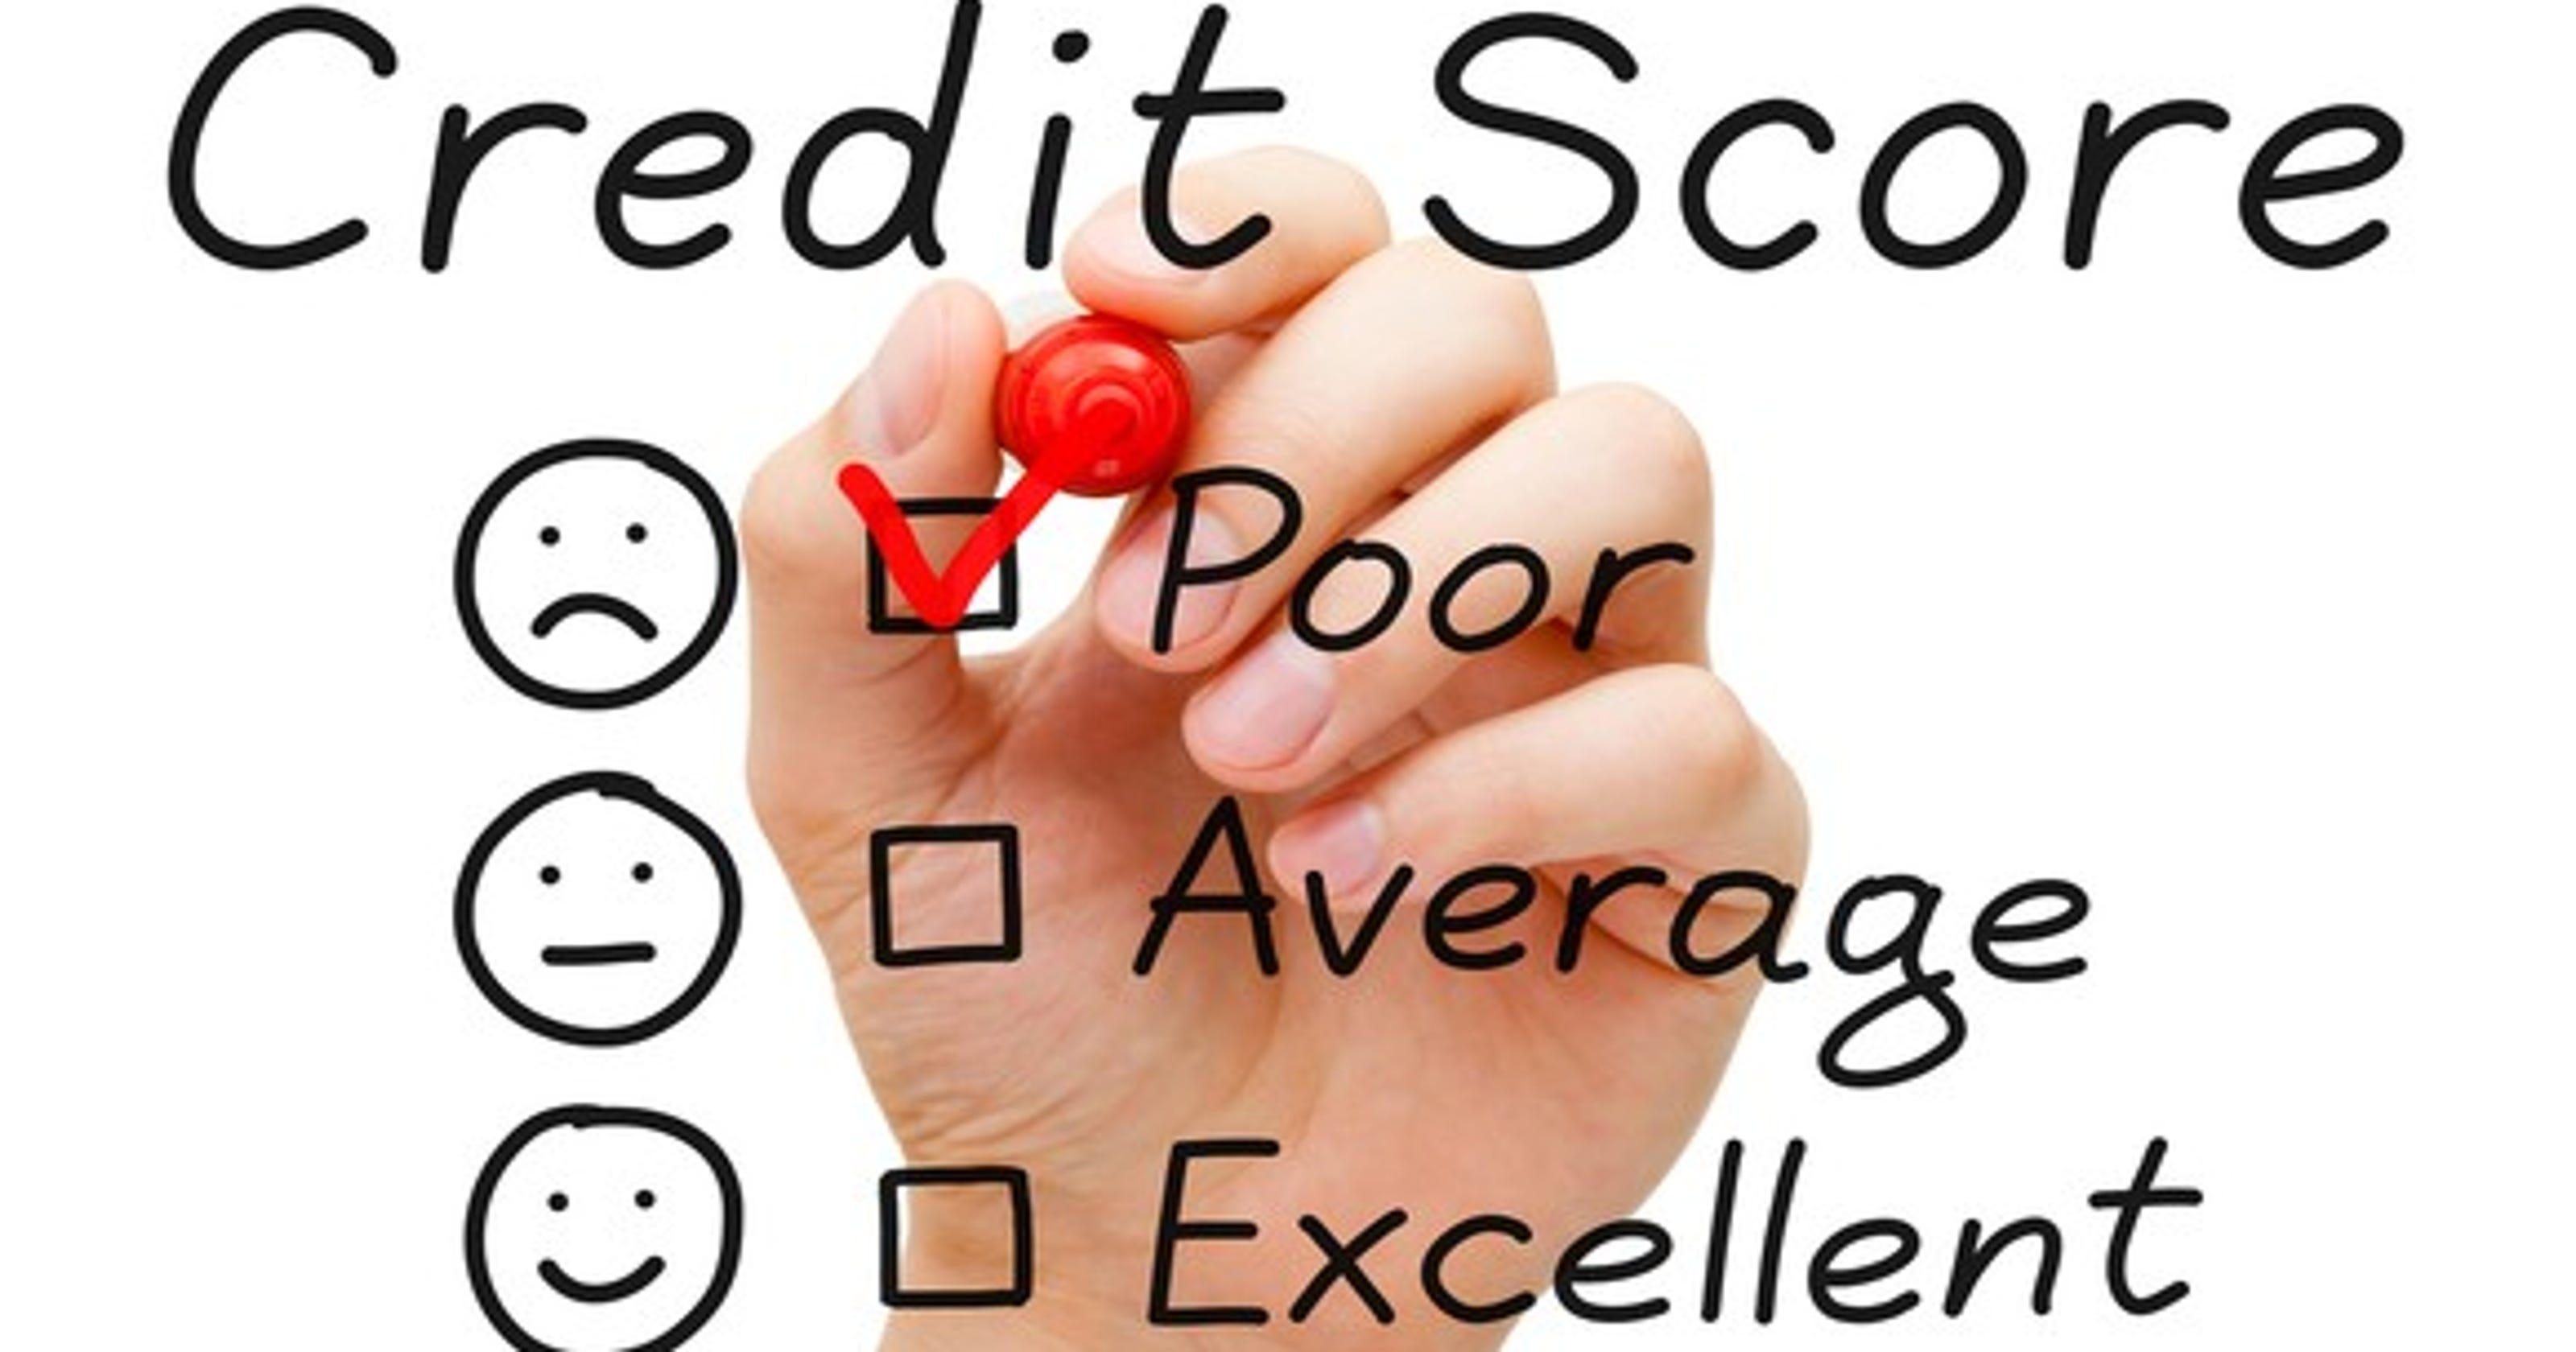 5 ways bad credit can keep you from being a functional adult